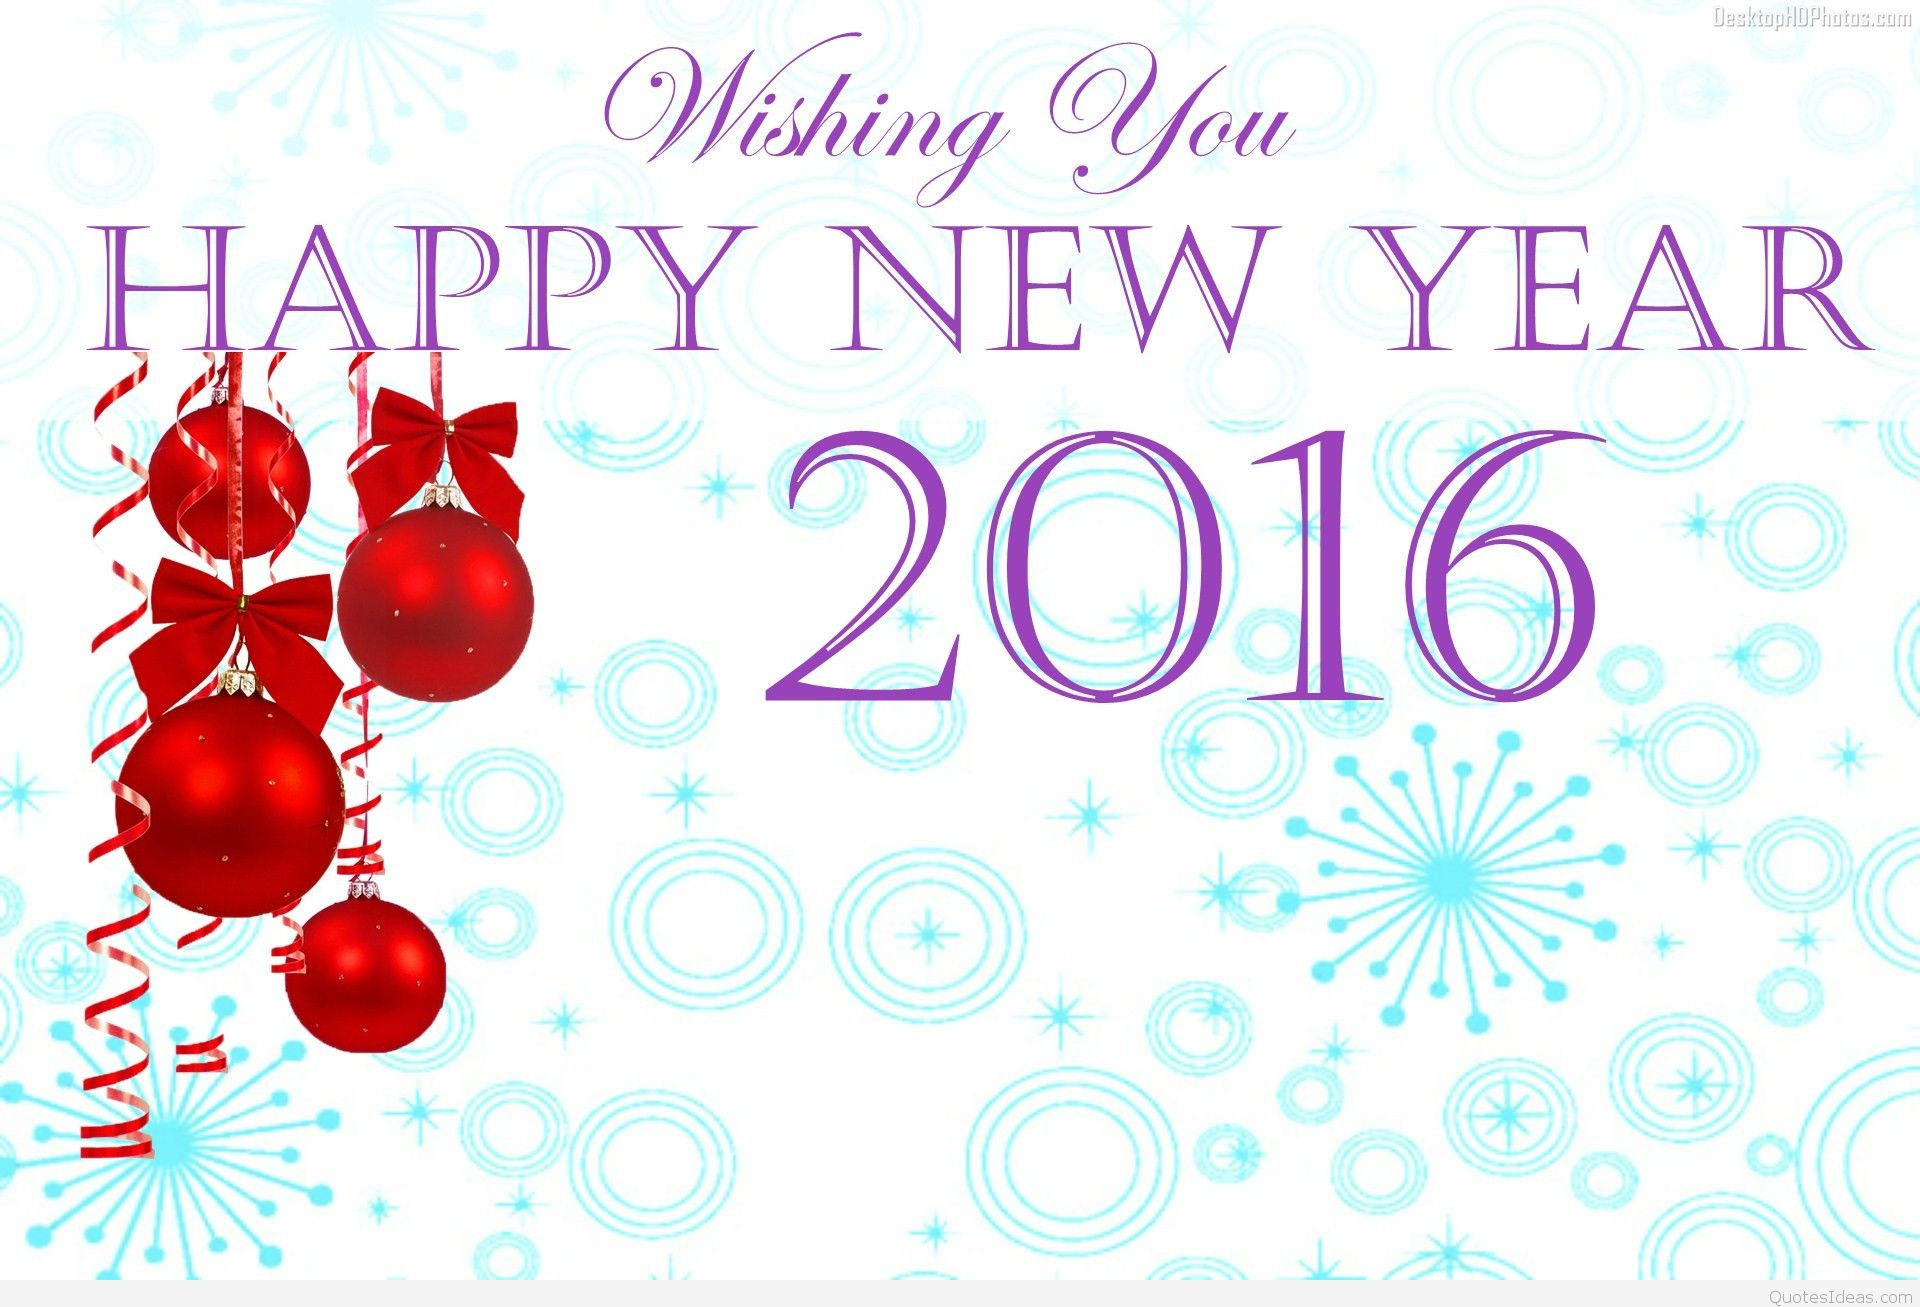 Beautiful Happy New Year Wallpapers HD (22)